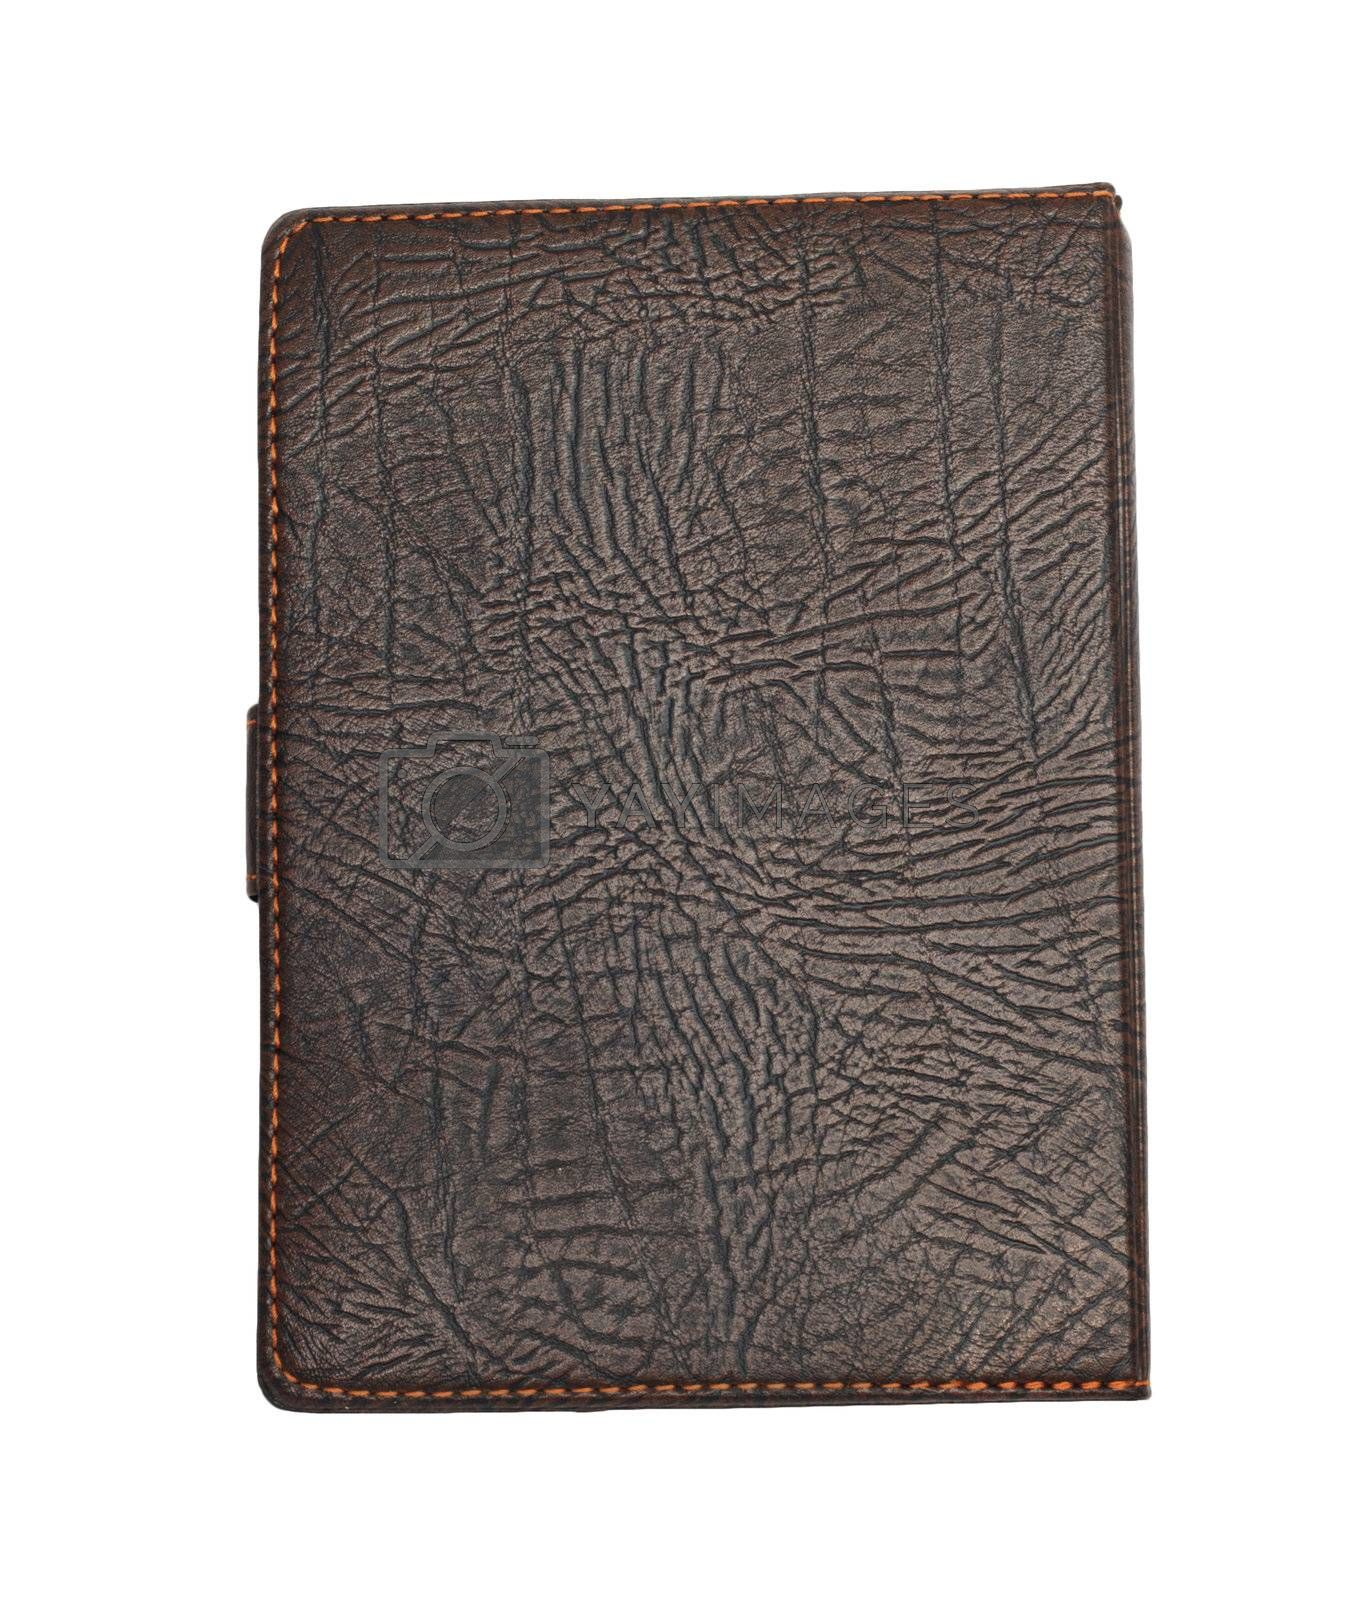 brown leather note book isolated on white background